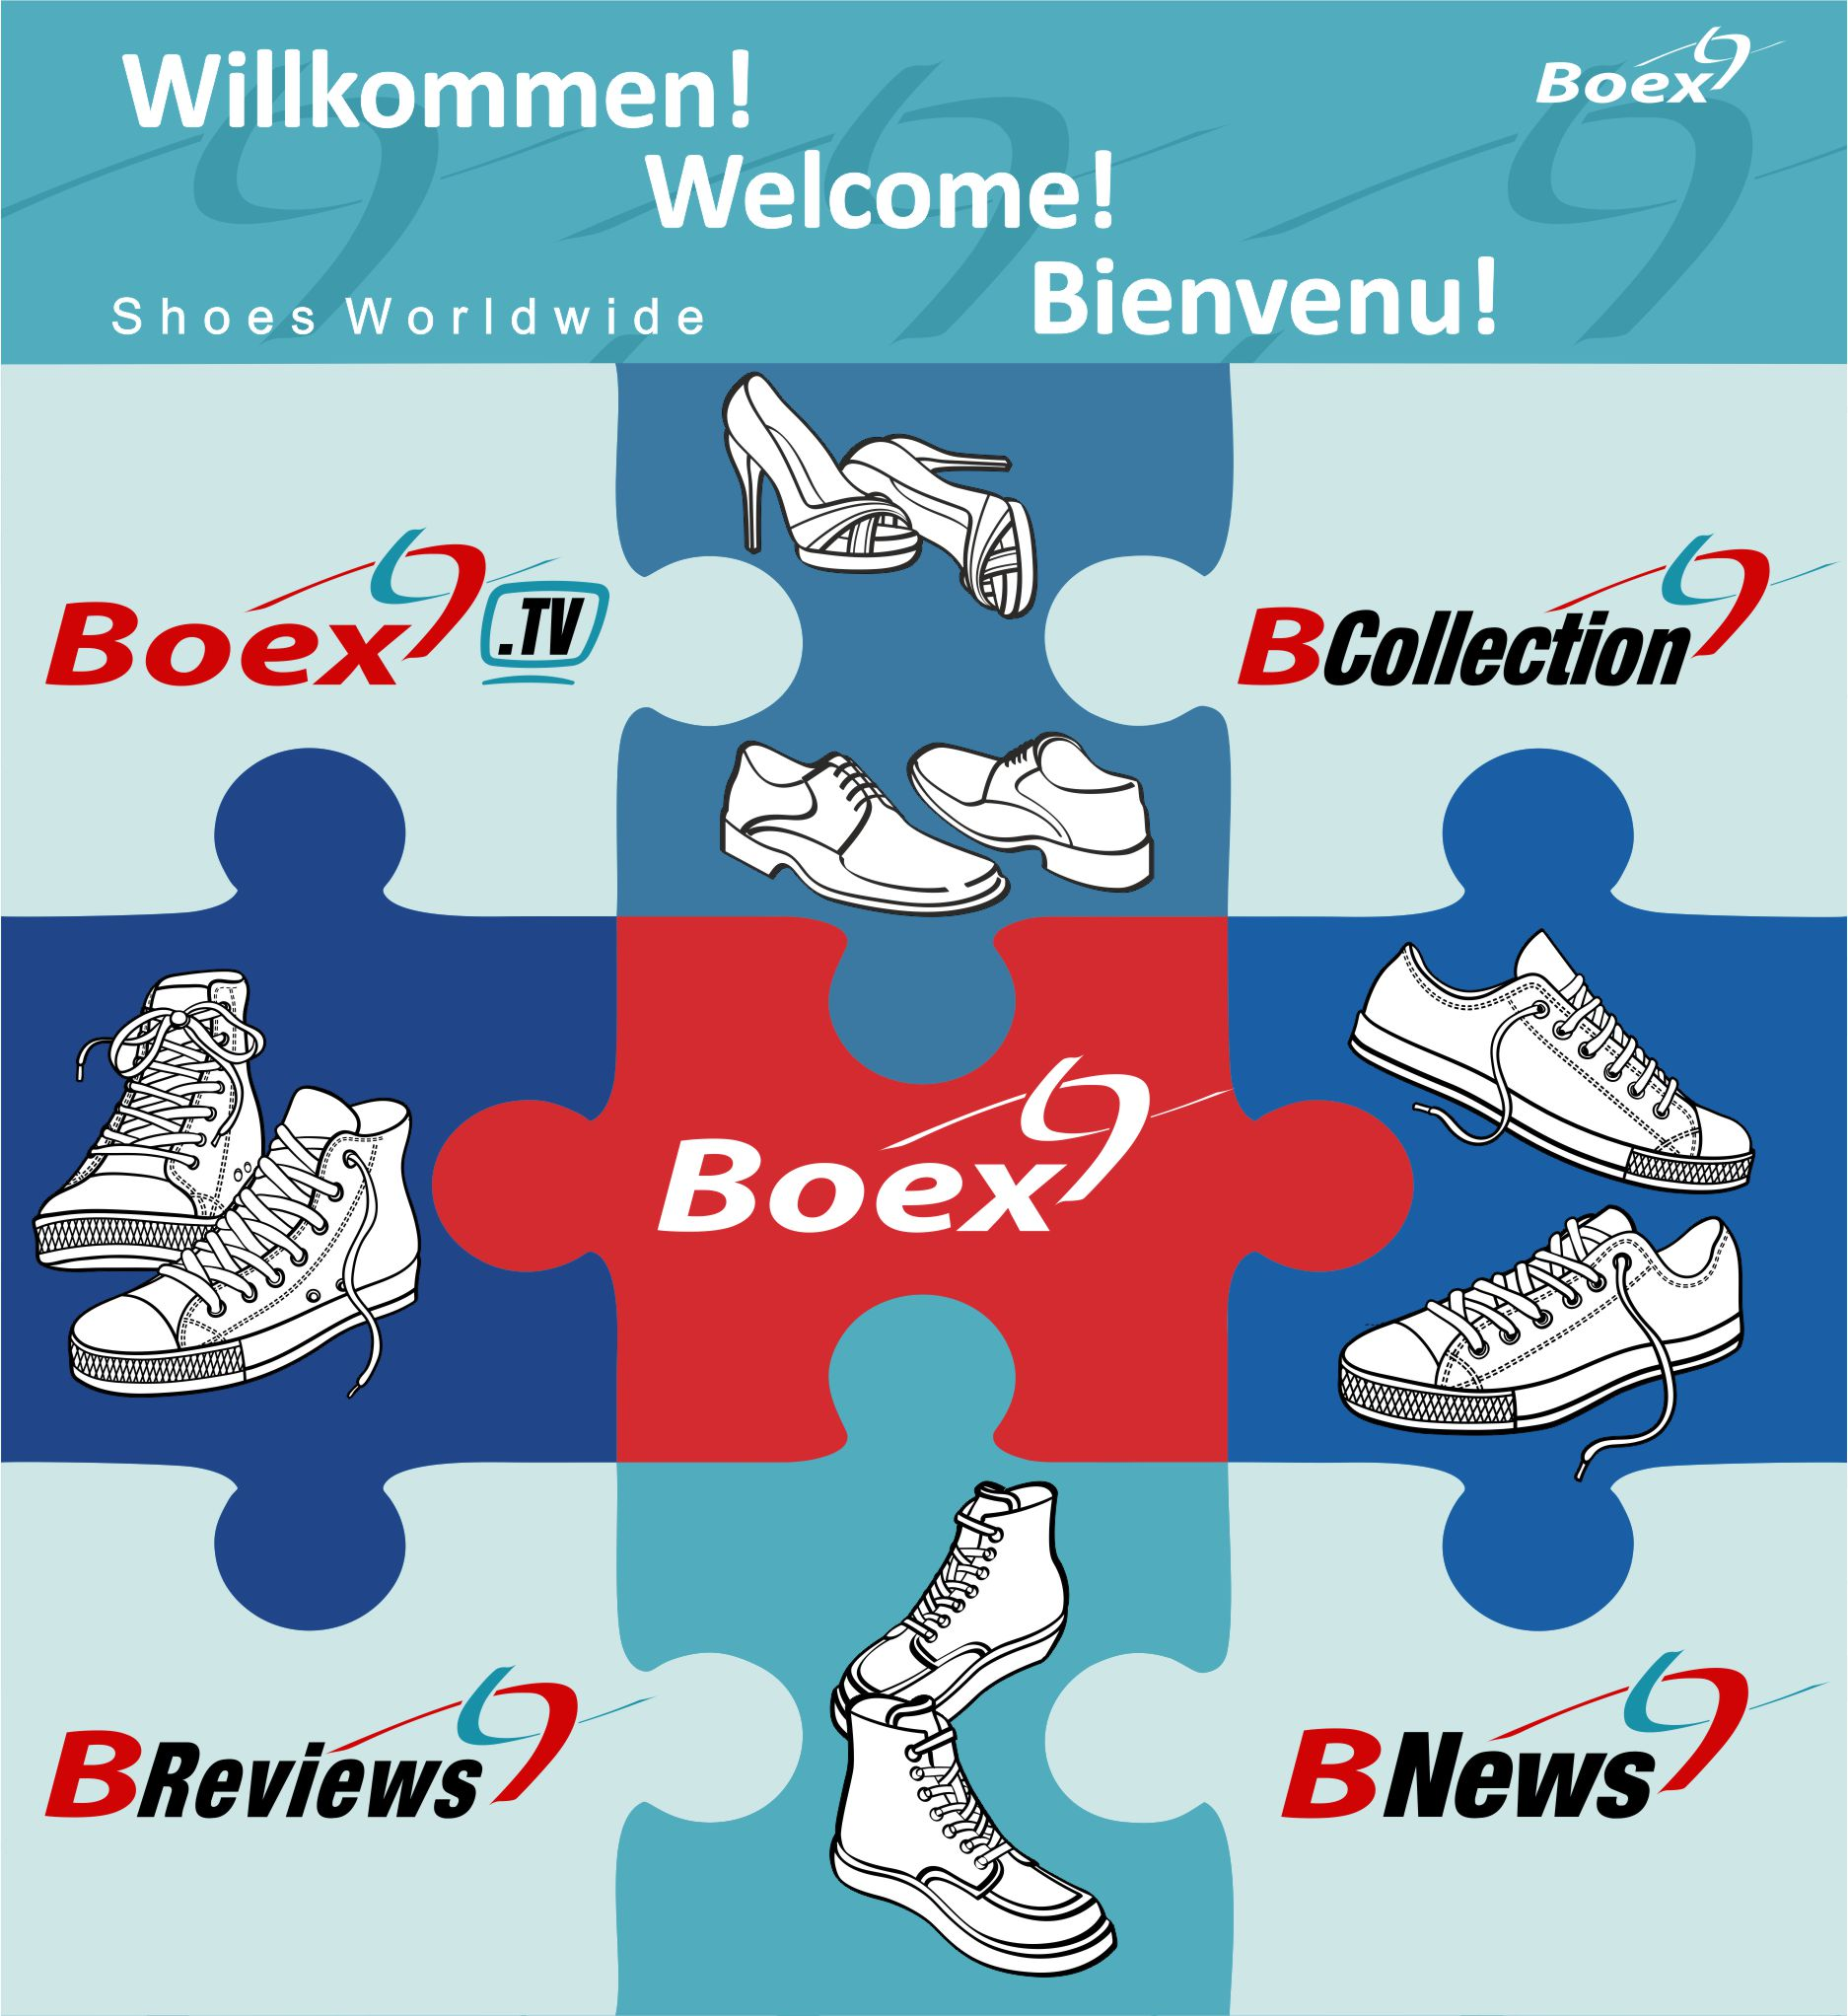 828705c1b67ad6 Gebrauchte Schuhe Exporter - Boex Frankfurt - Second Hand Supplier and Used  Shoes Wholesaler